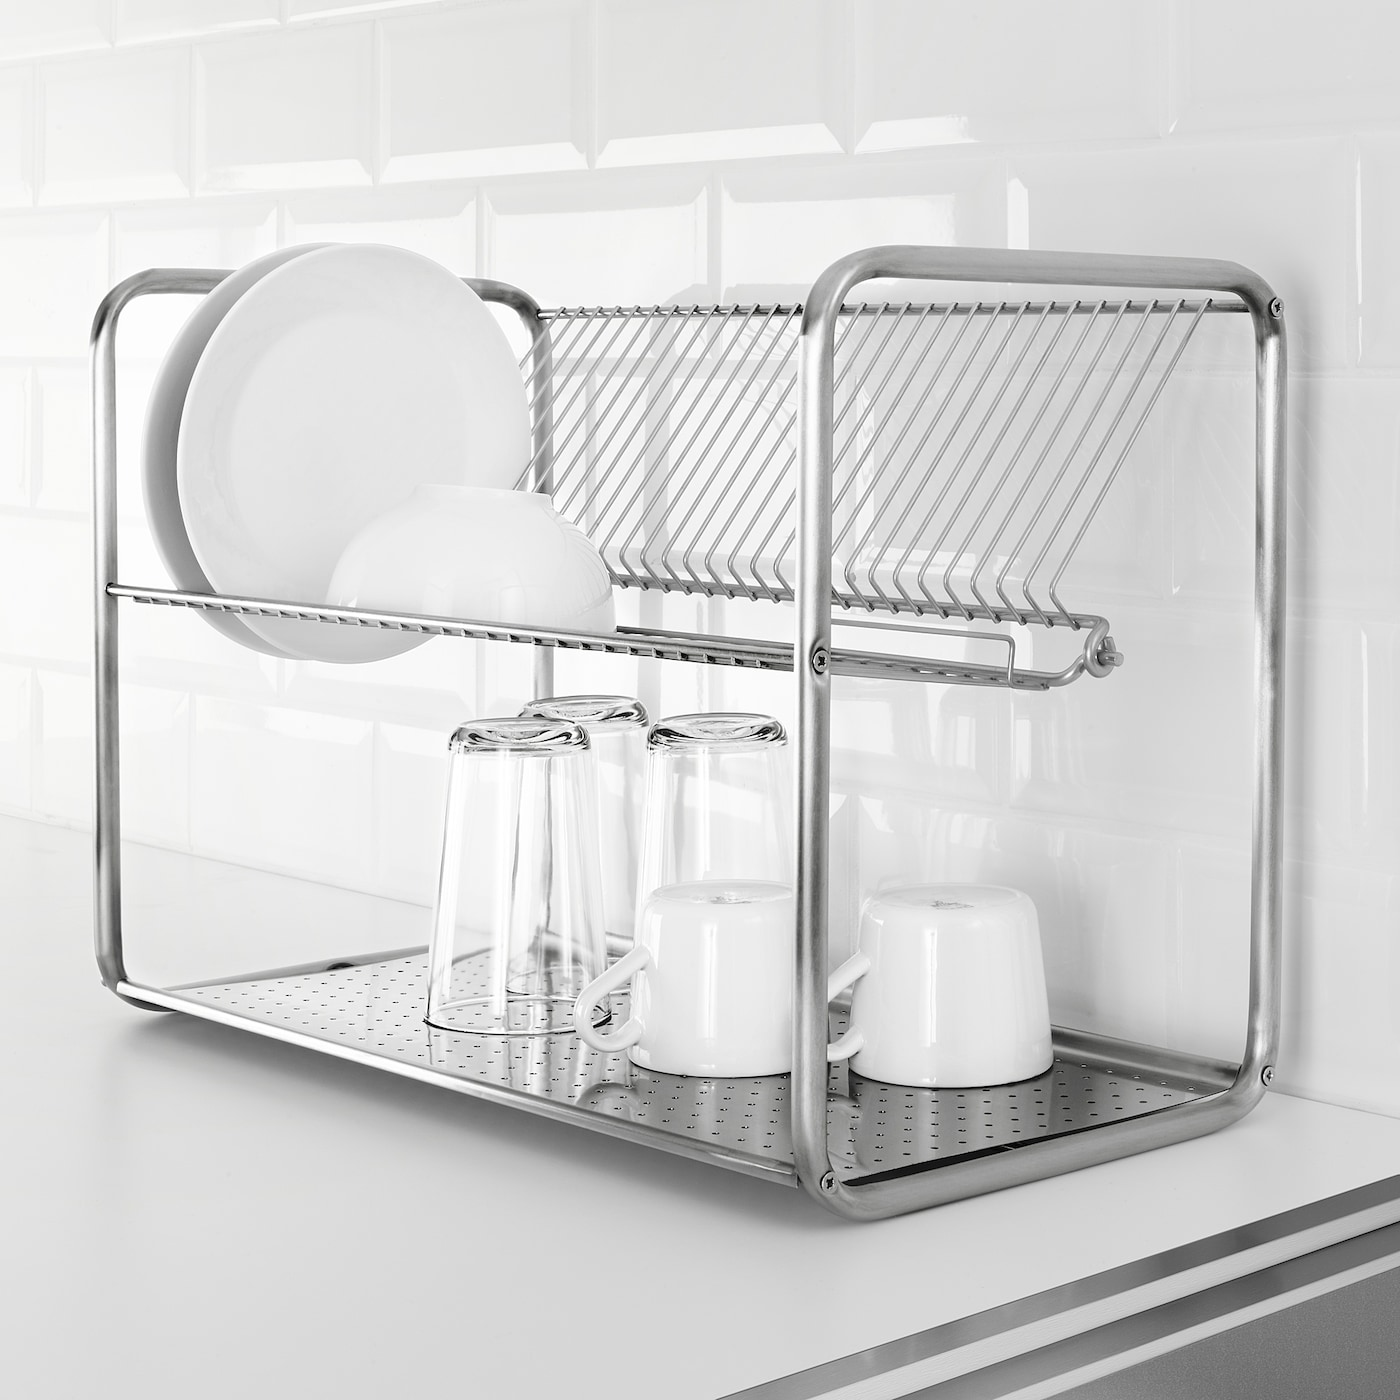 Ordning Dish Drainer Stainless Steel 50x27x36 Cm Ikea